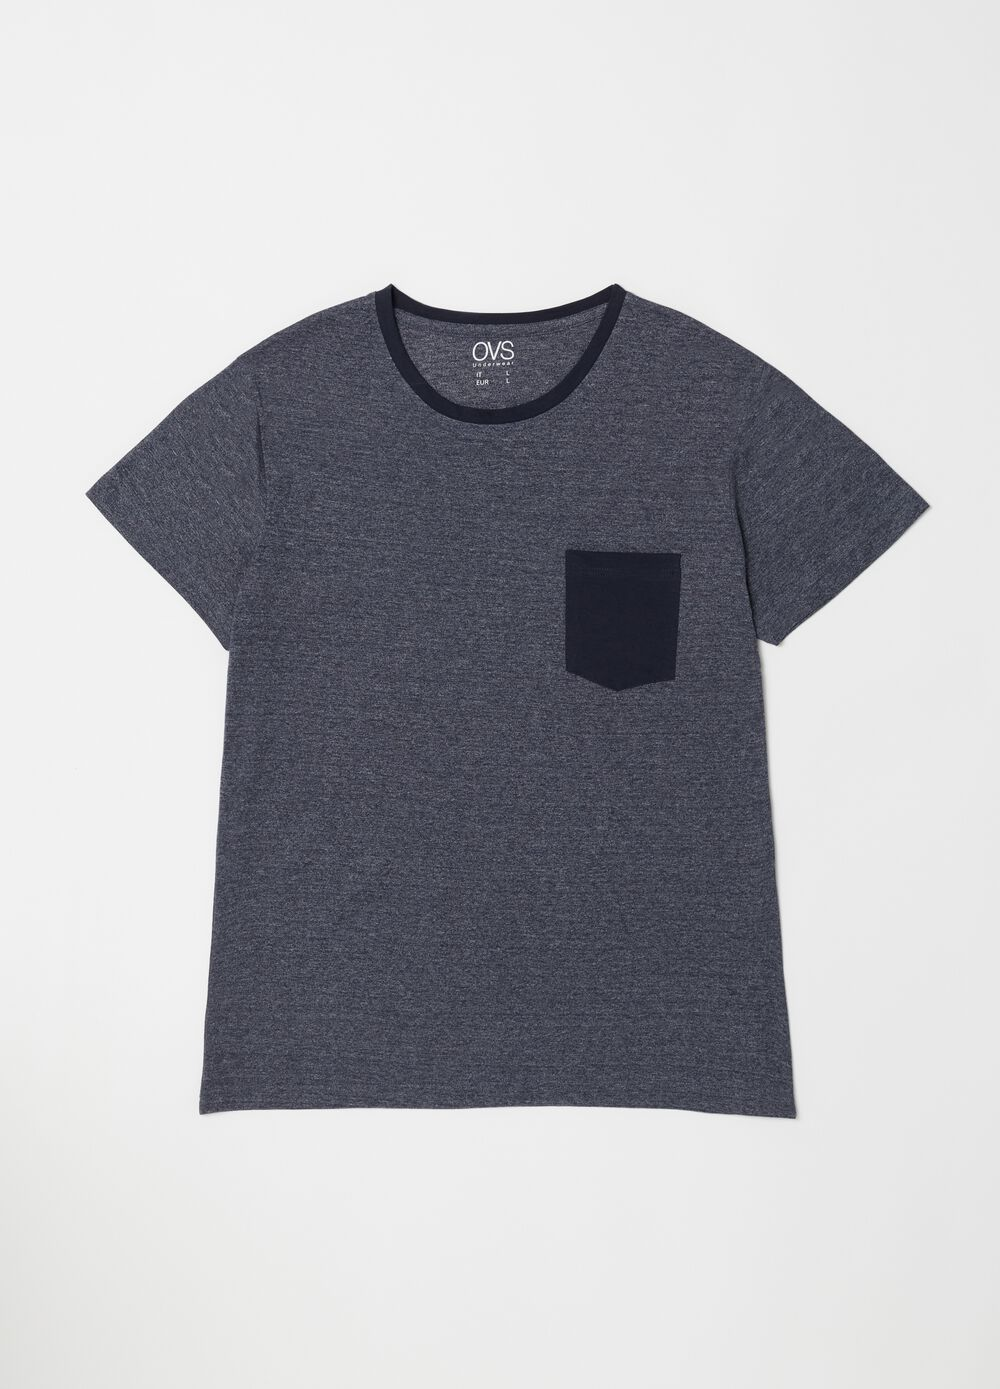 Short mélange-effect pyjamas with pocket